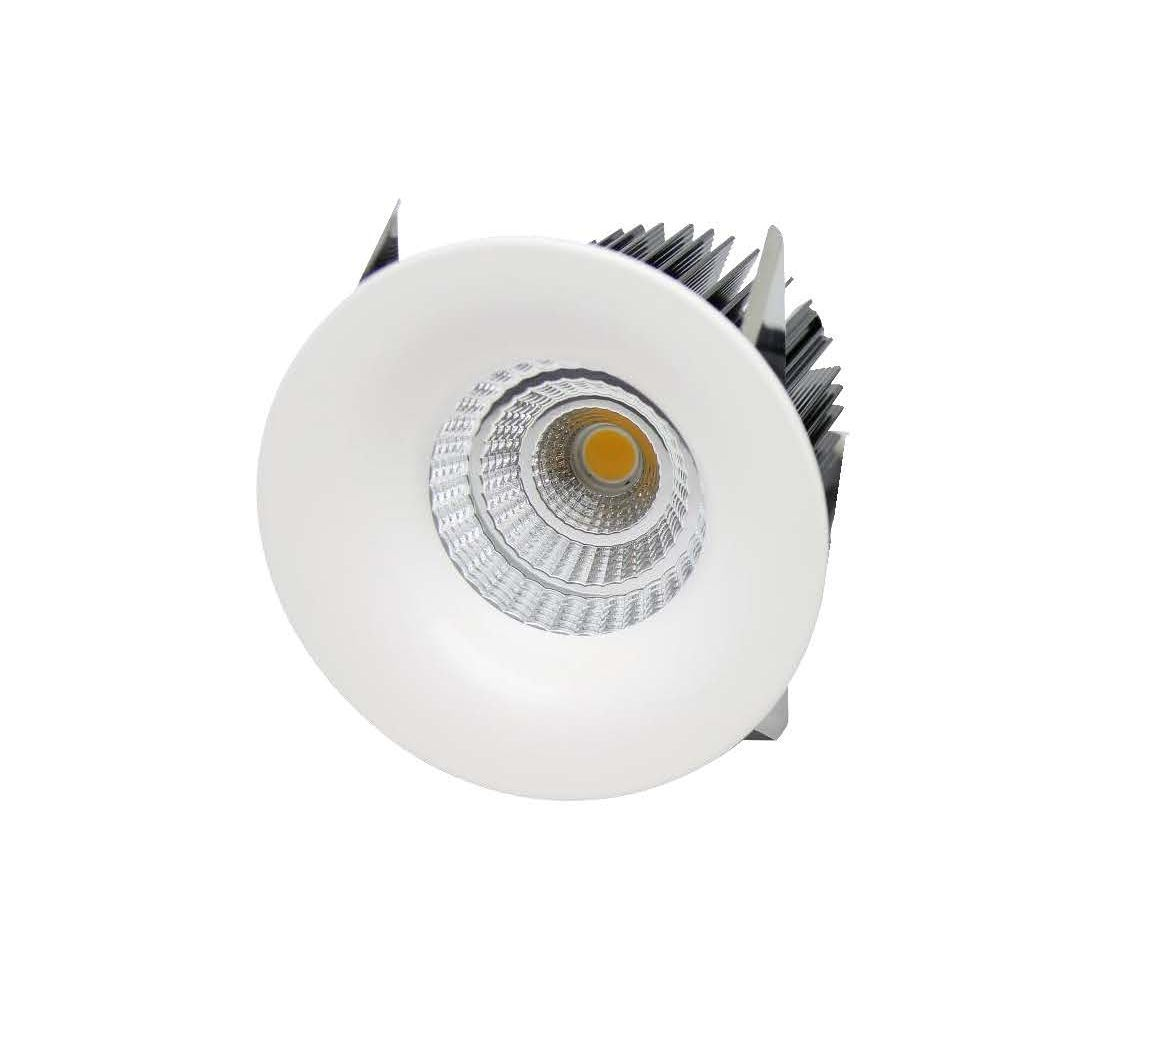 002 weatherproof downlight